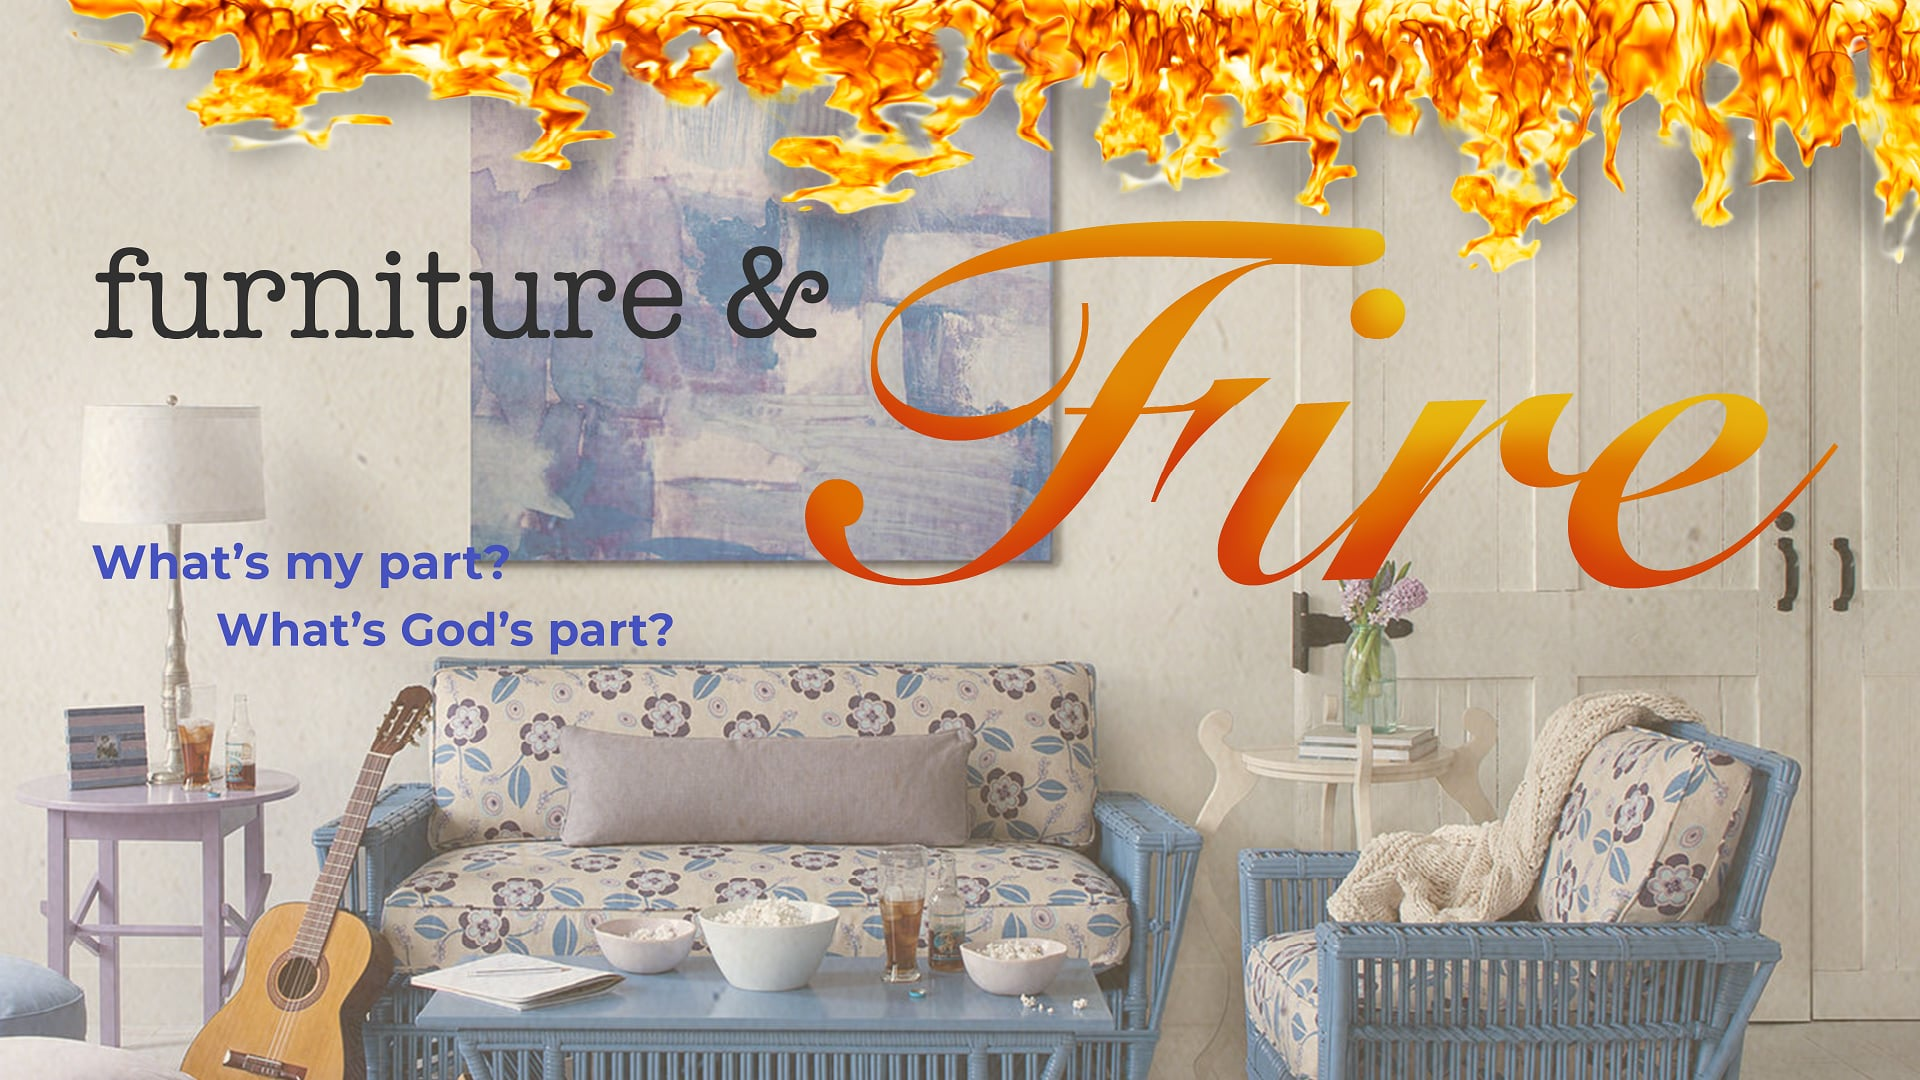 Furniture and Fire - Part 7